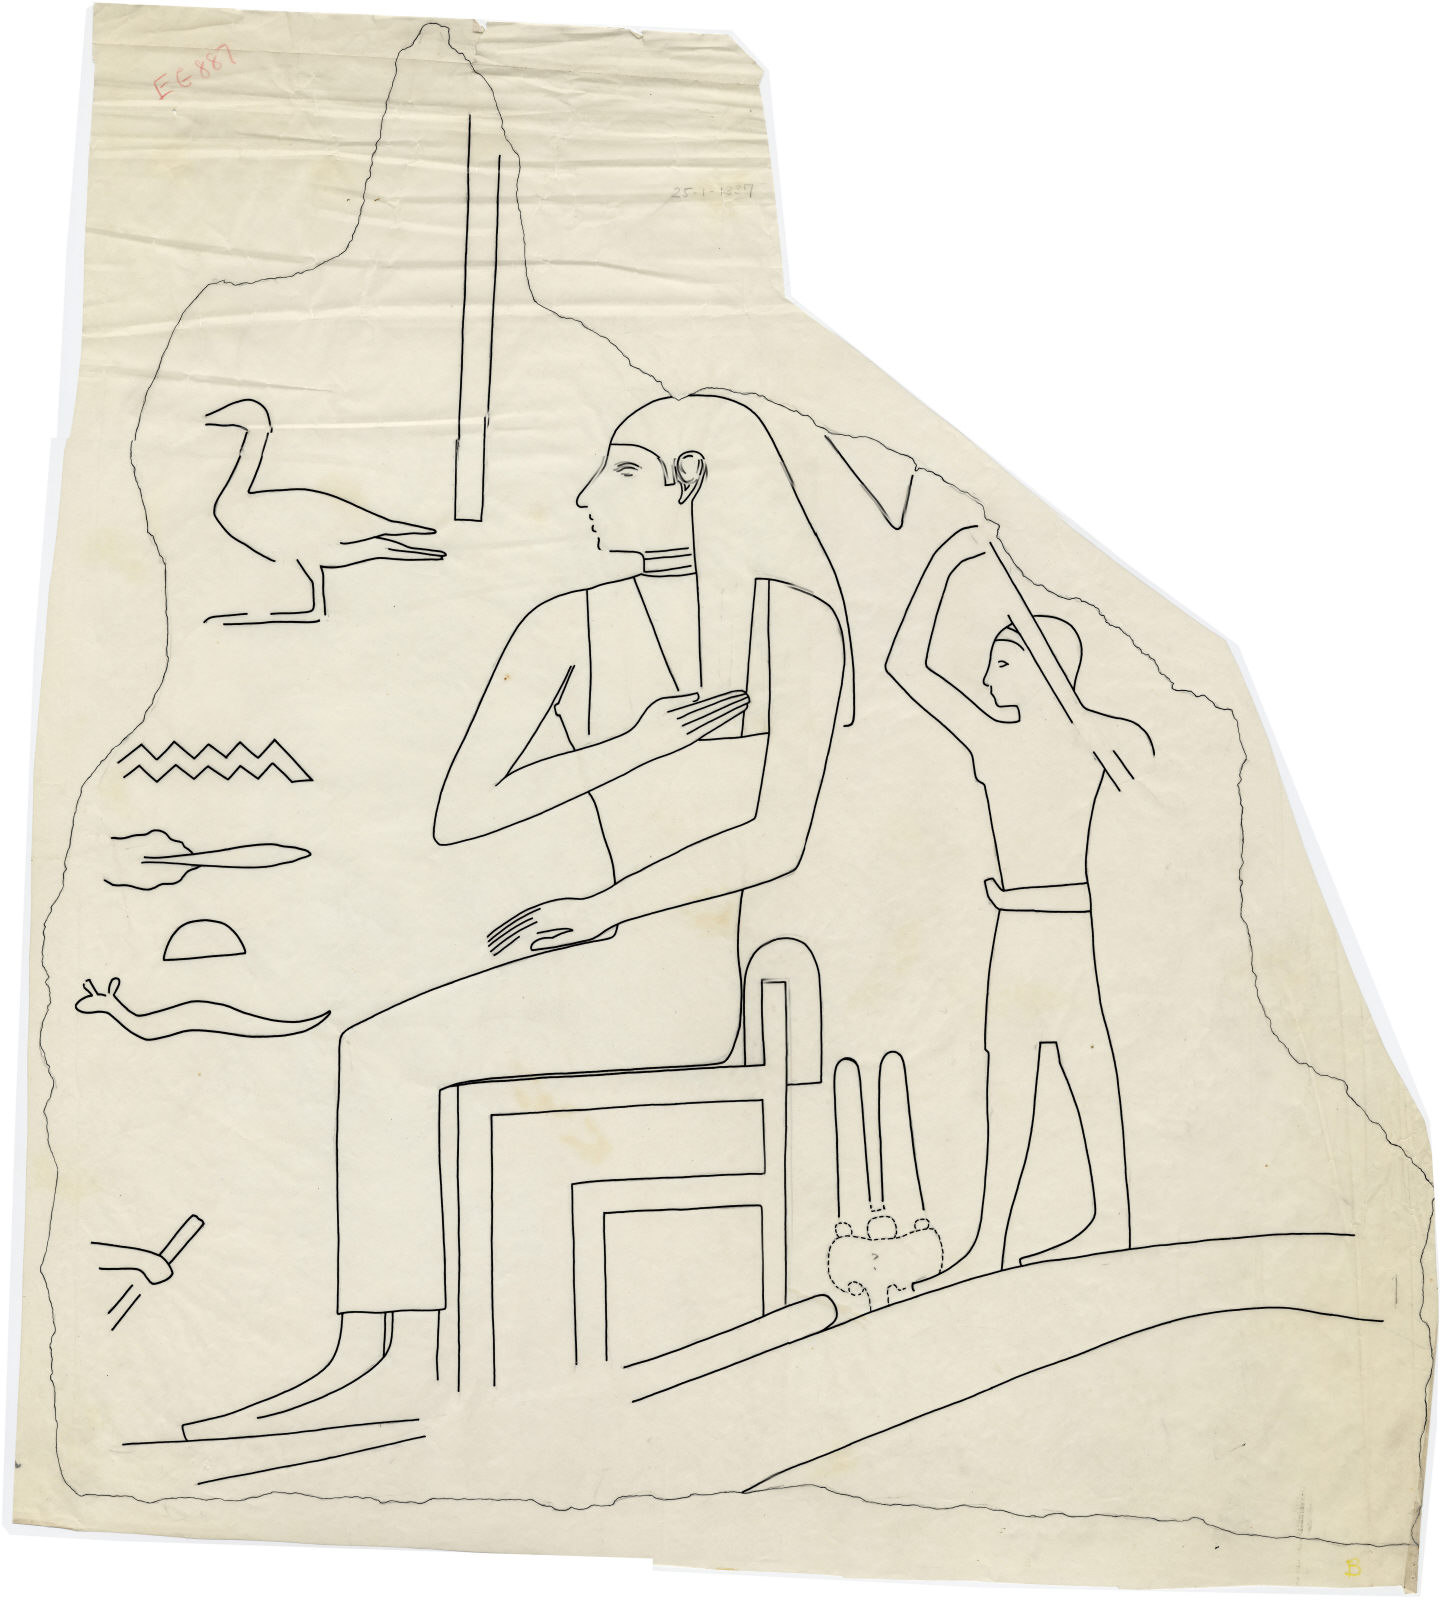 Drawings: G 7410-7420: G 7410: fragment of relief